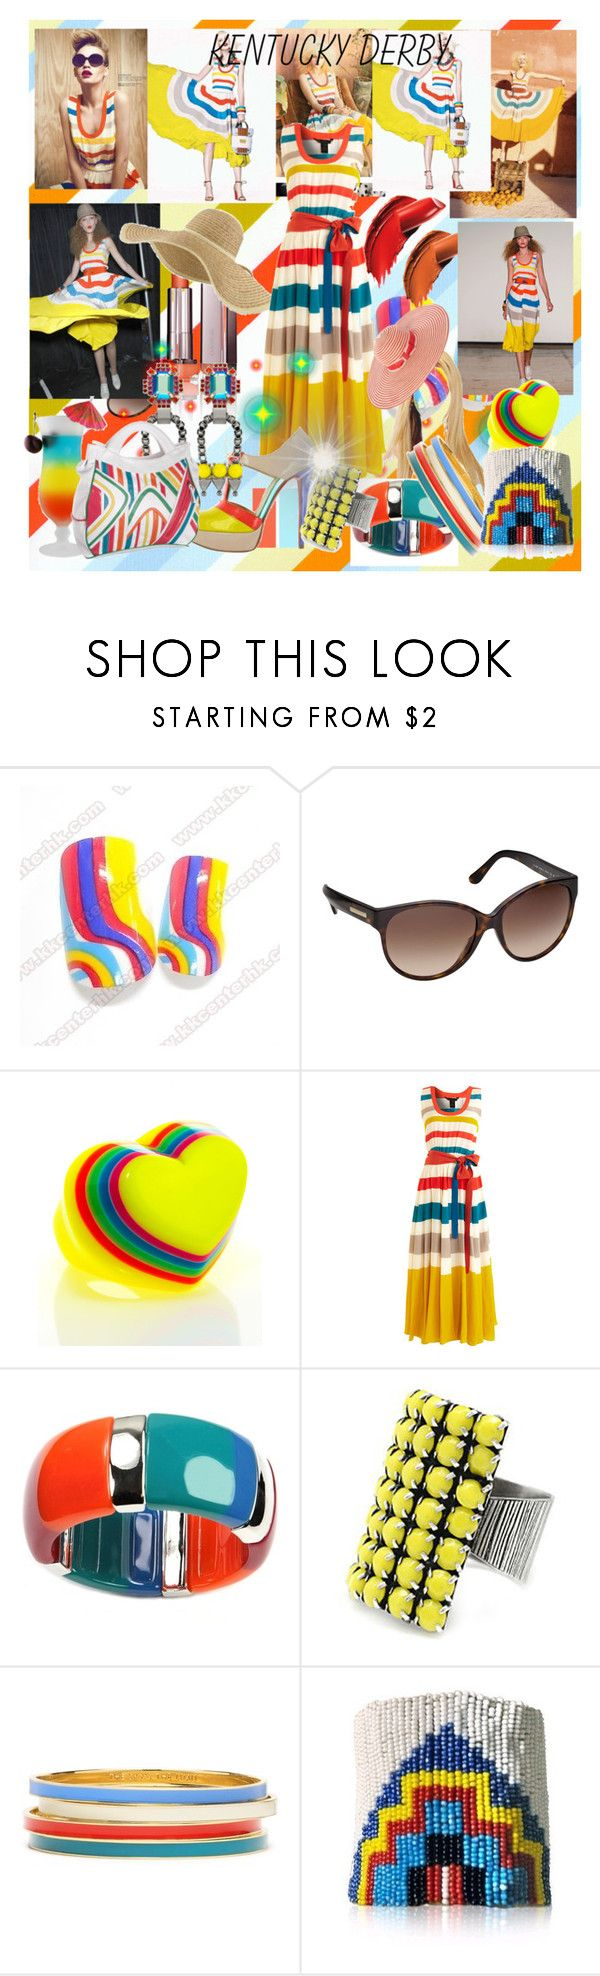 """""""Summer girl"""" by caramelpz ❤ liked on Polyvore featuring Burberry, COVERGIRL, Marc by Marc Jacobs, FRIDA, JLo by Jennifer Lopez, Marc Jacobs, Adia Kibur, Nine West, Margarita and Christian Louboutin"""